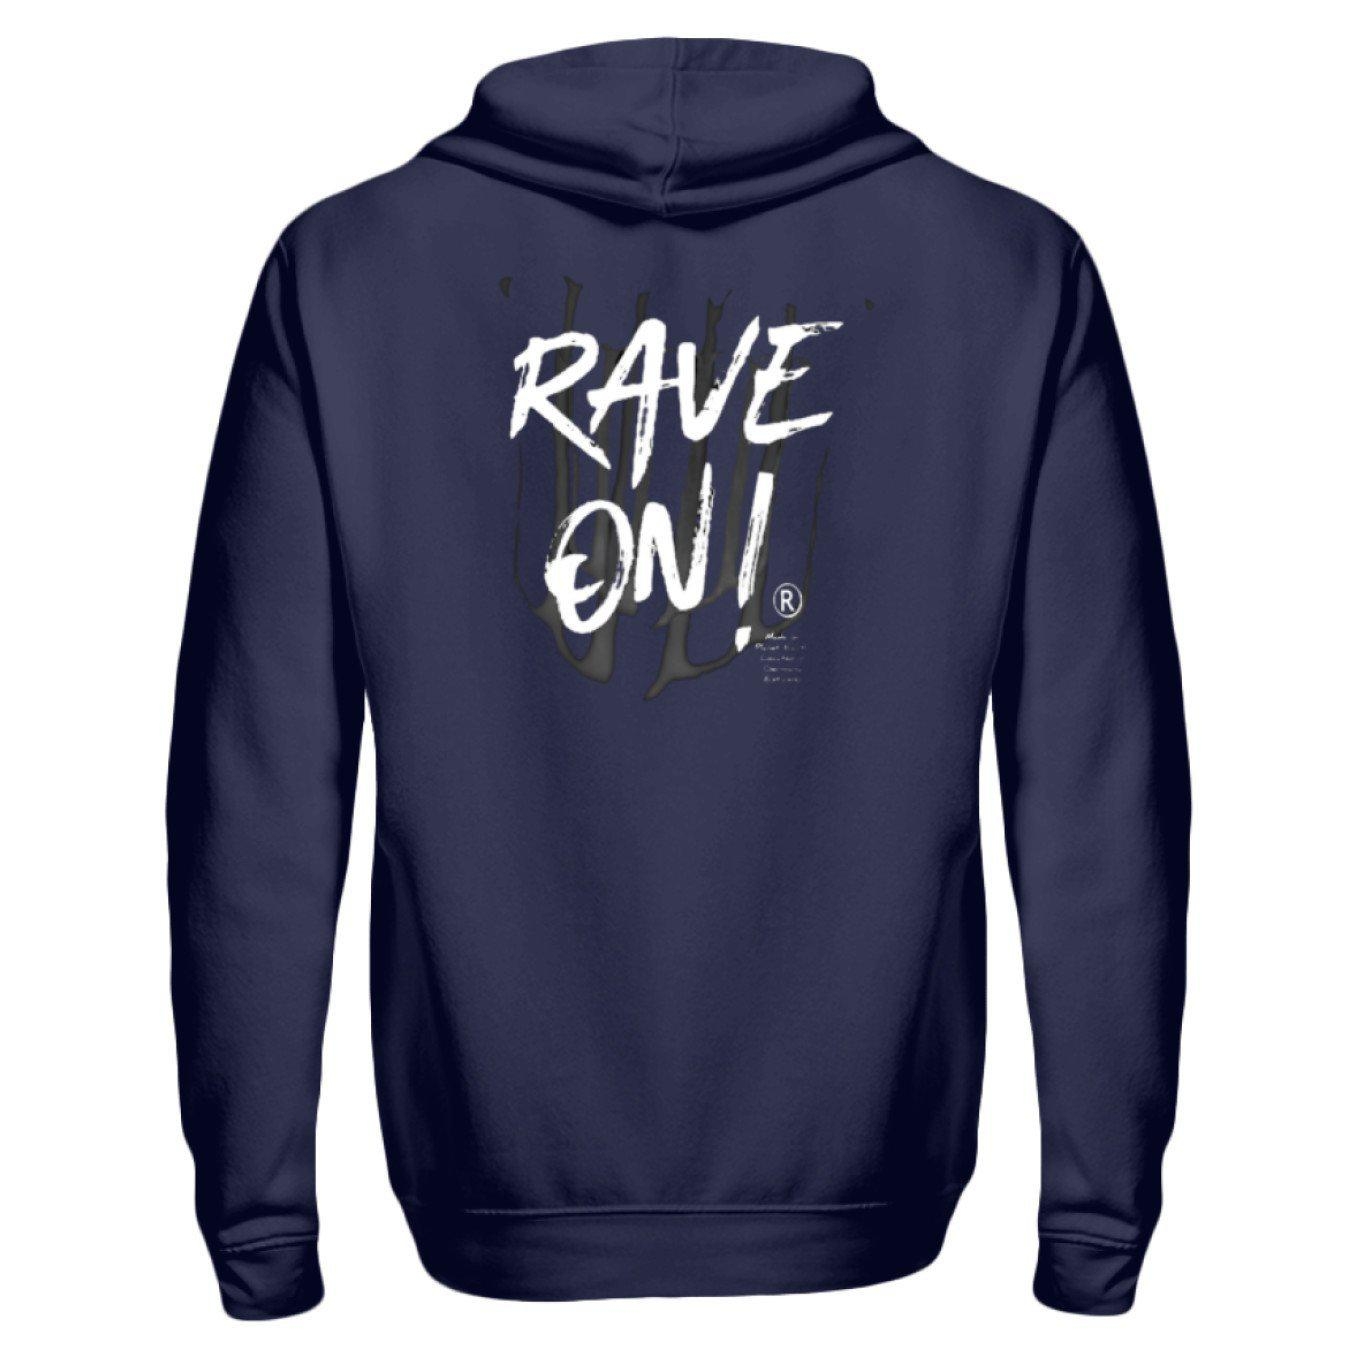 Rave On!® - Made On Planet Earth B2k20 - Zip-Hoodie ZipperB Navy / S - Rave On!® der Club & Techno Szene Shop für Coole Junge Mode Streetwear Style & Fashion Outfits + Sexy Festival 420 Stuff